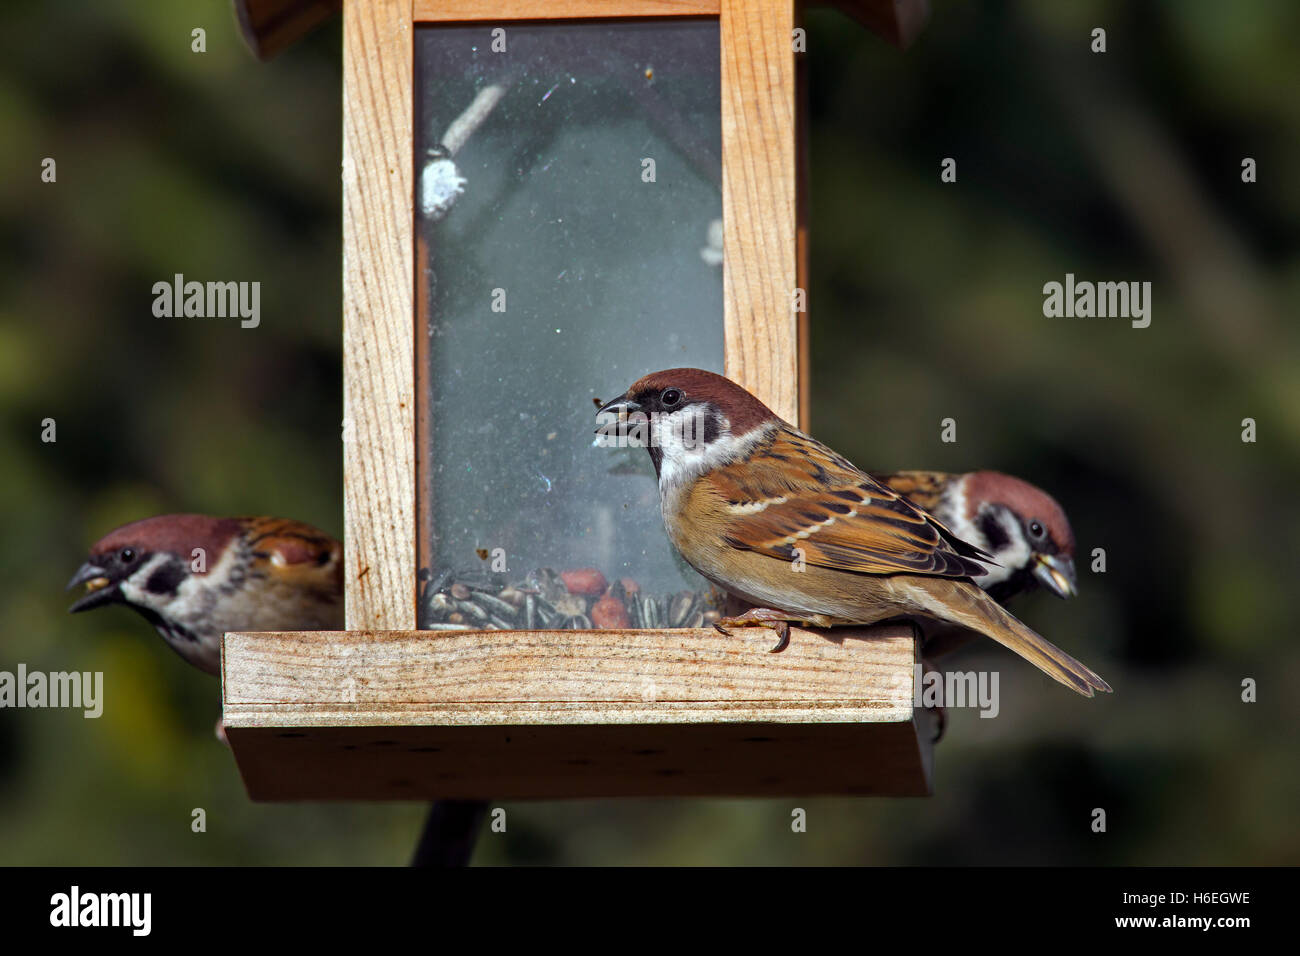 Eurasian tree sparrows (Passer montanus) feeding on peanuts and seeds from bird feeder in the snow in winter - Stock Image